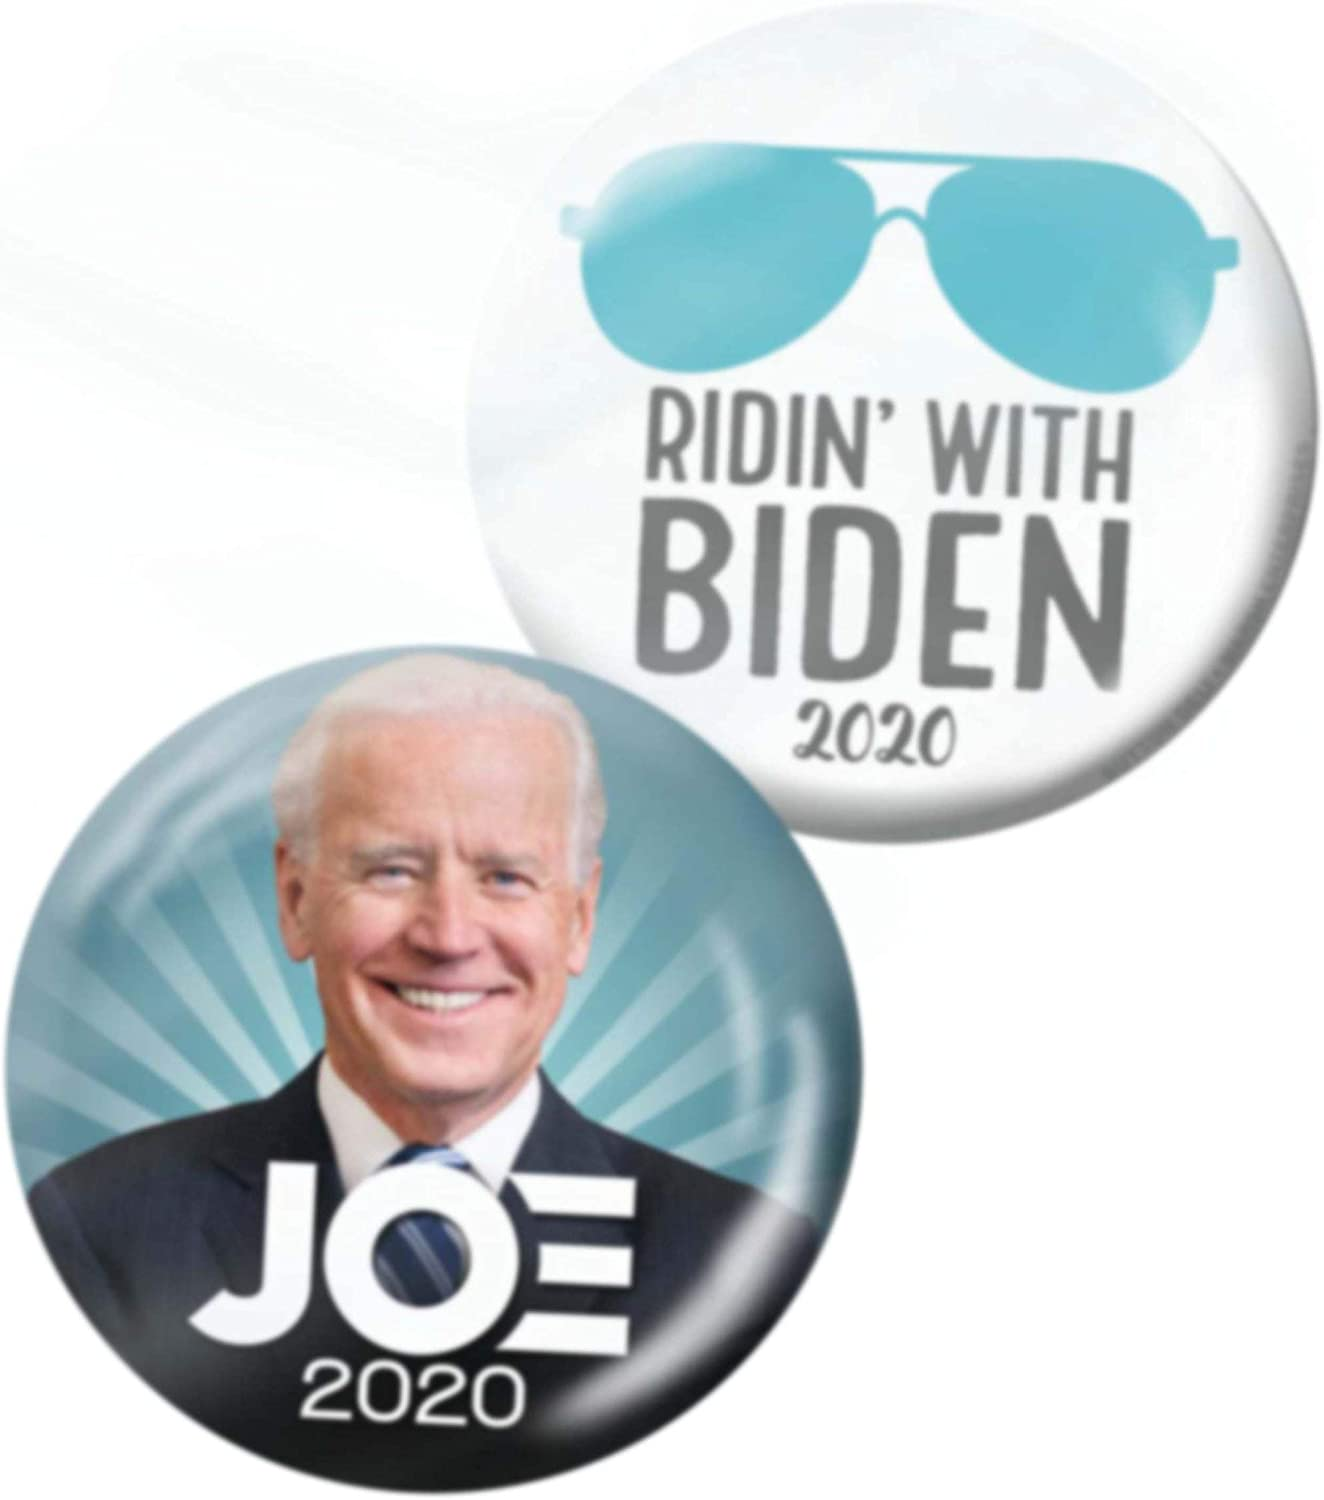 Ridin' with Biden 35% OFF Button and Photo 2020 Pins Joe - 2-Pack Free shipping on posting reviews